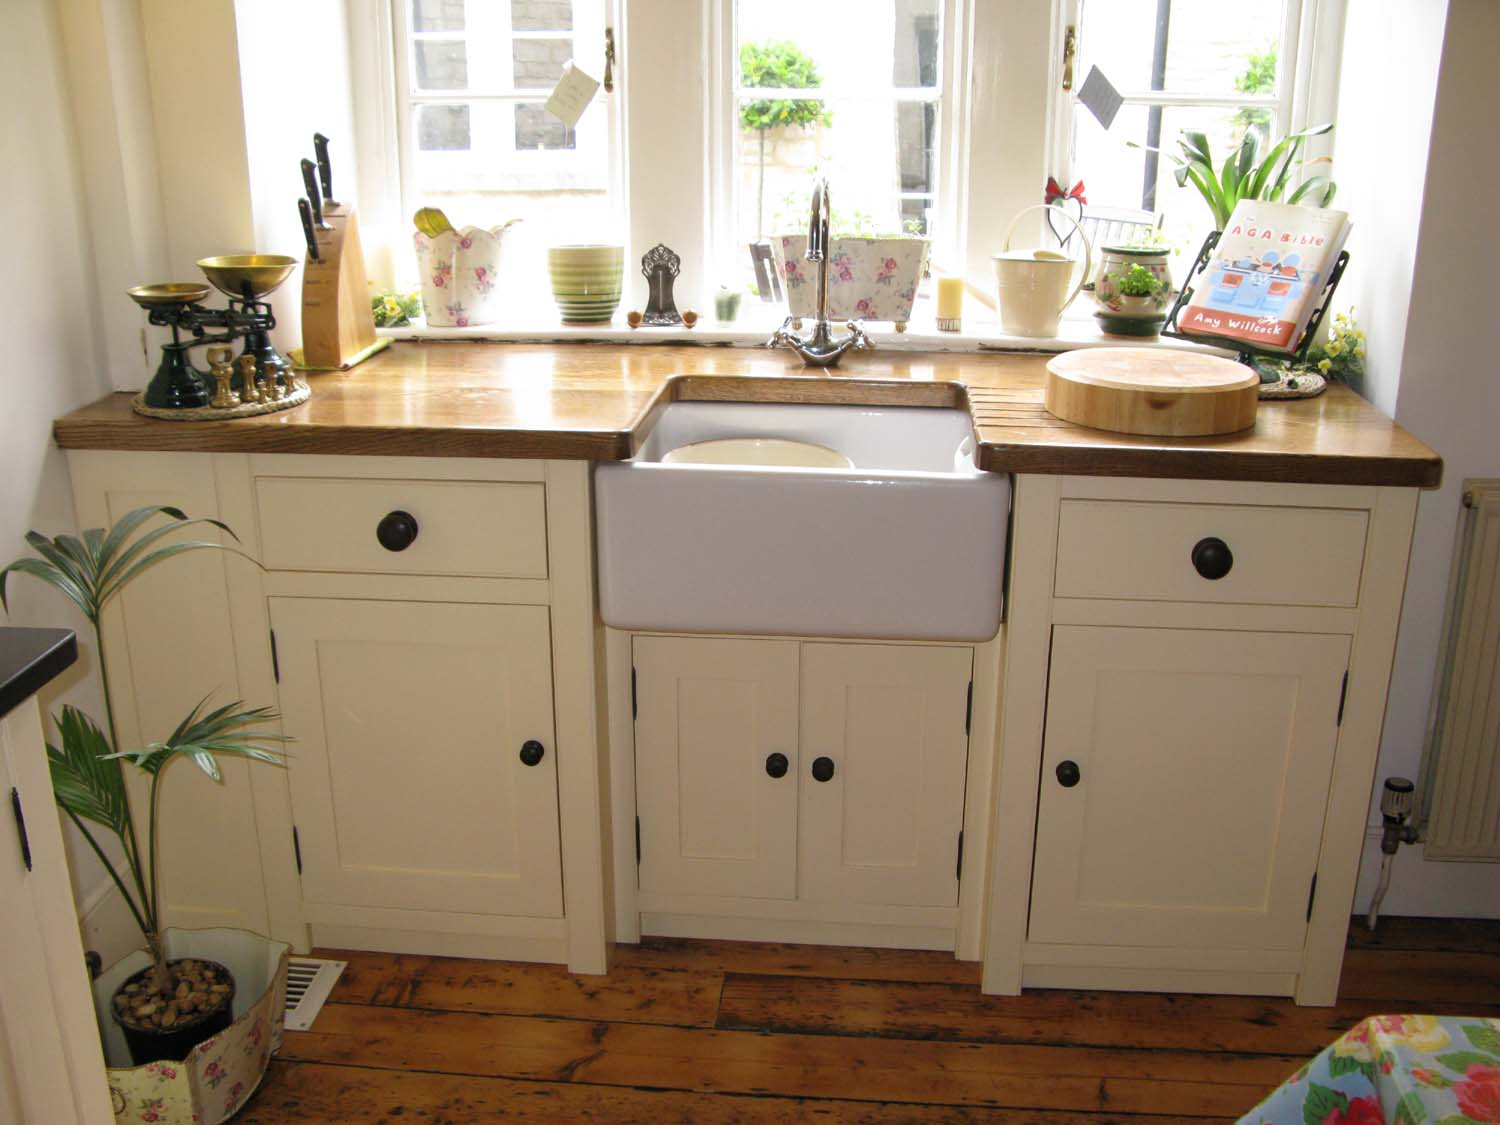 Kitchen Freestanding Cabinet The Ministry Of Pine Antique Pine Furniture And Free